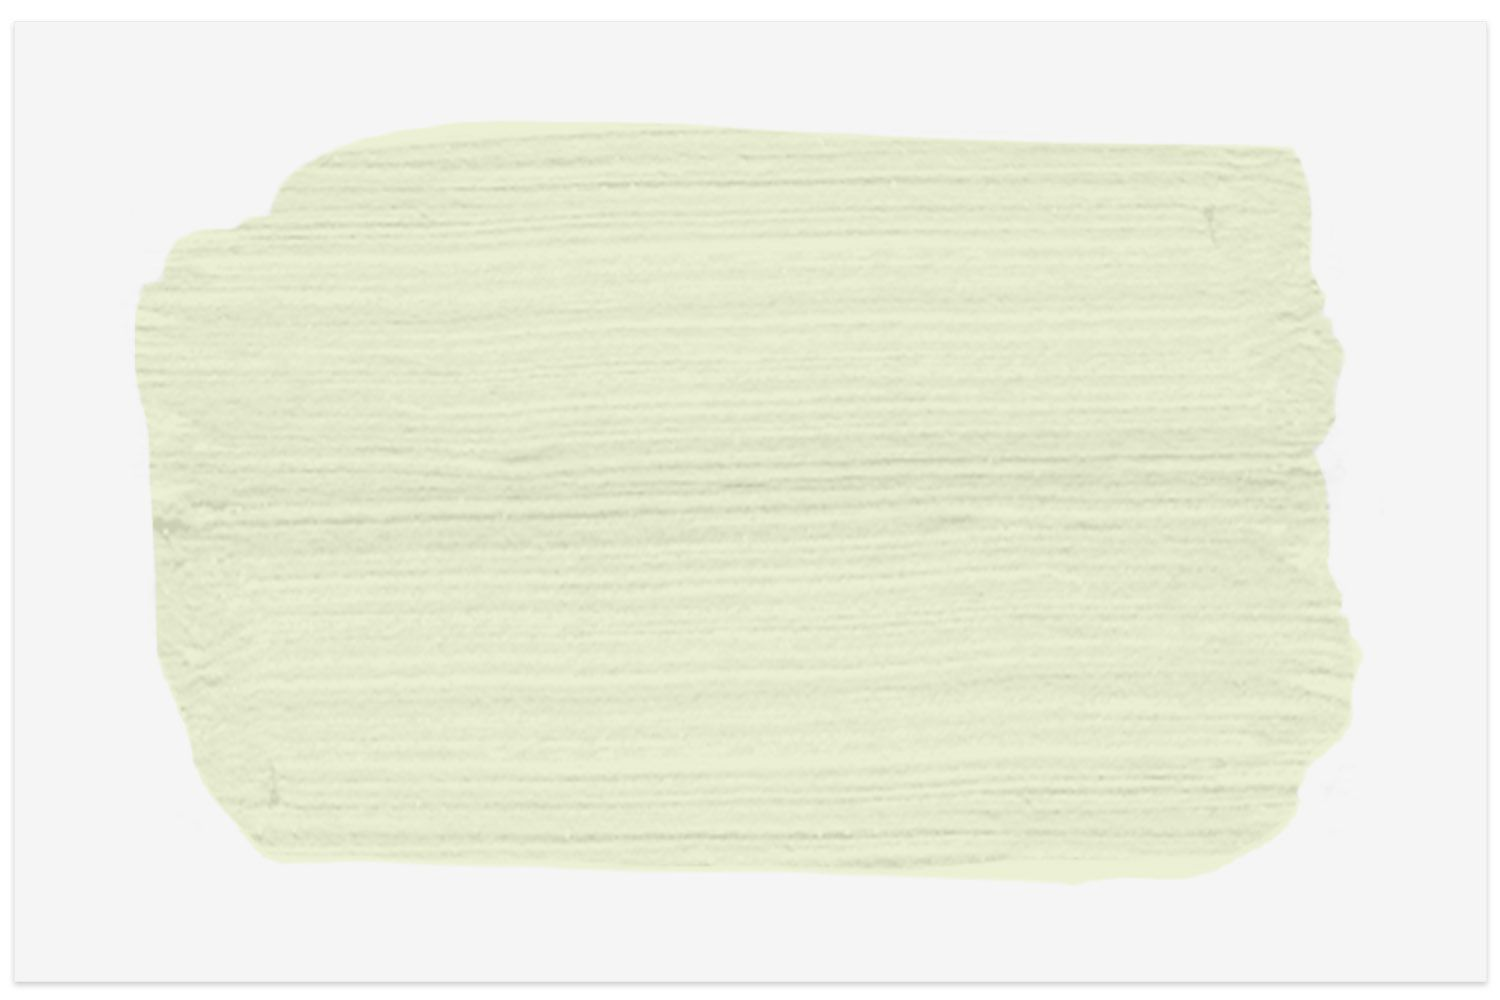 Monet Moonrise 410-A1 paint swatch from Behr